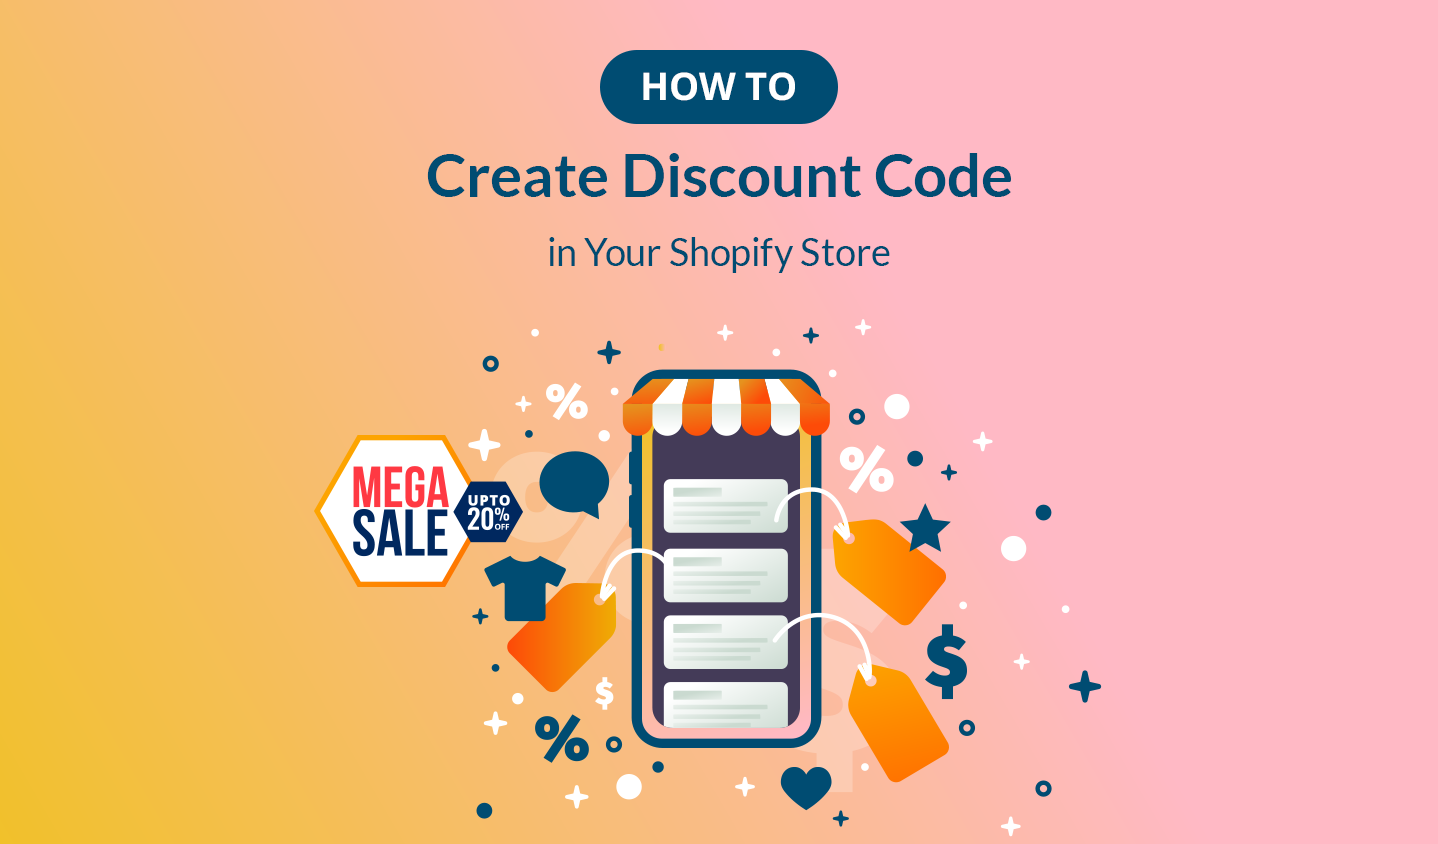 How to Create Discount Code in Your Shopify Store